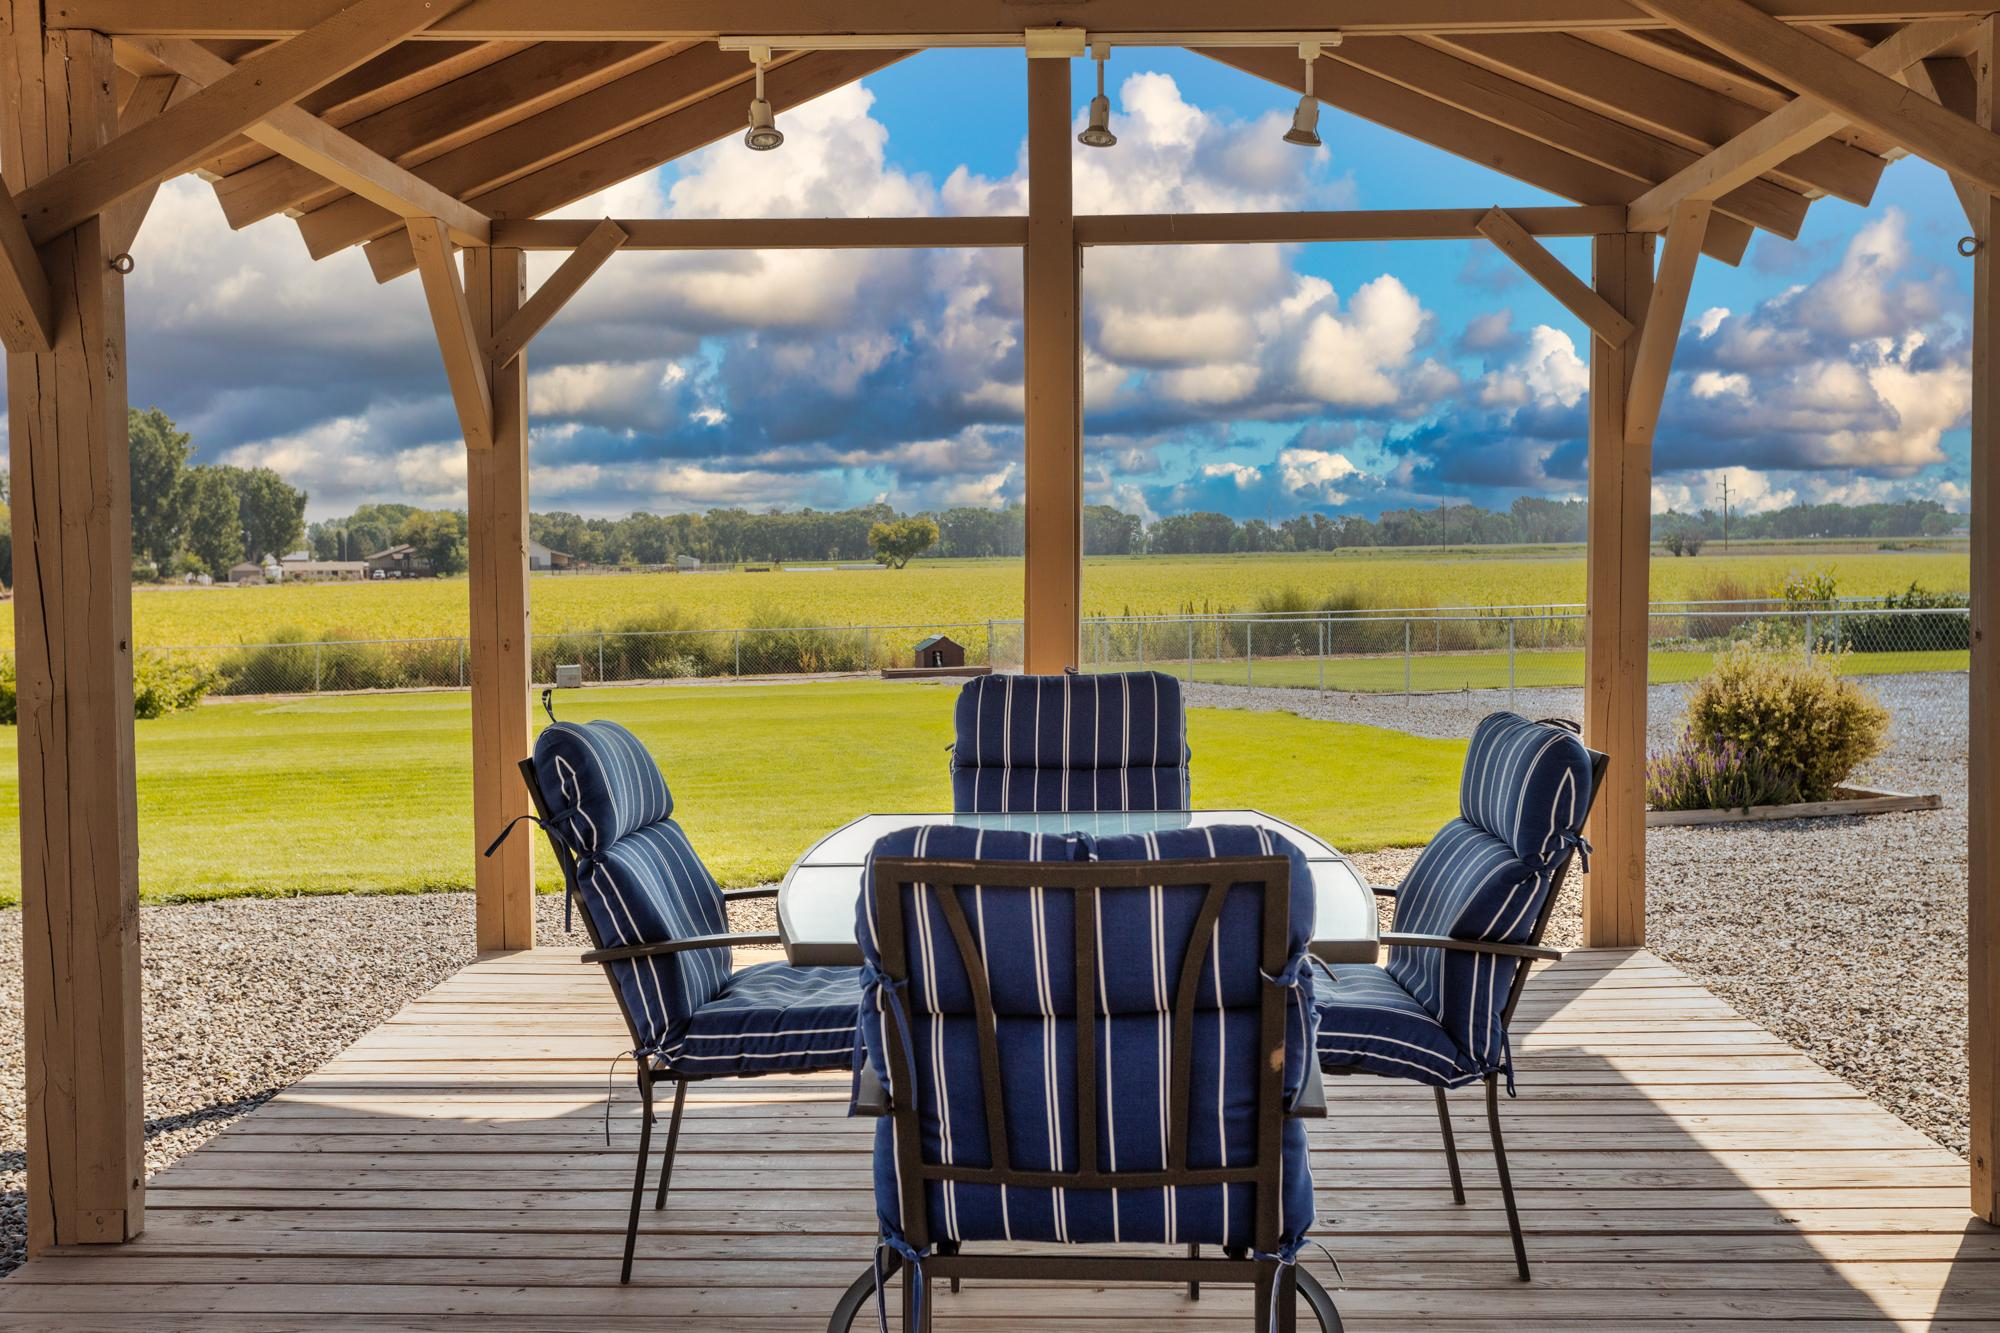 Gazebo with Views - 15552 6120 Rd Montrose, CO 81403 - Atha Team Country Real Estate